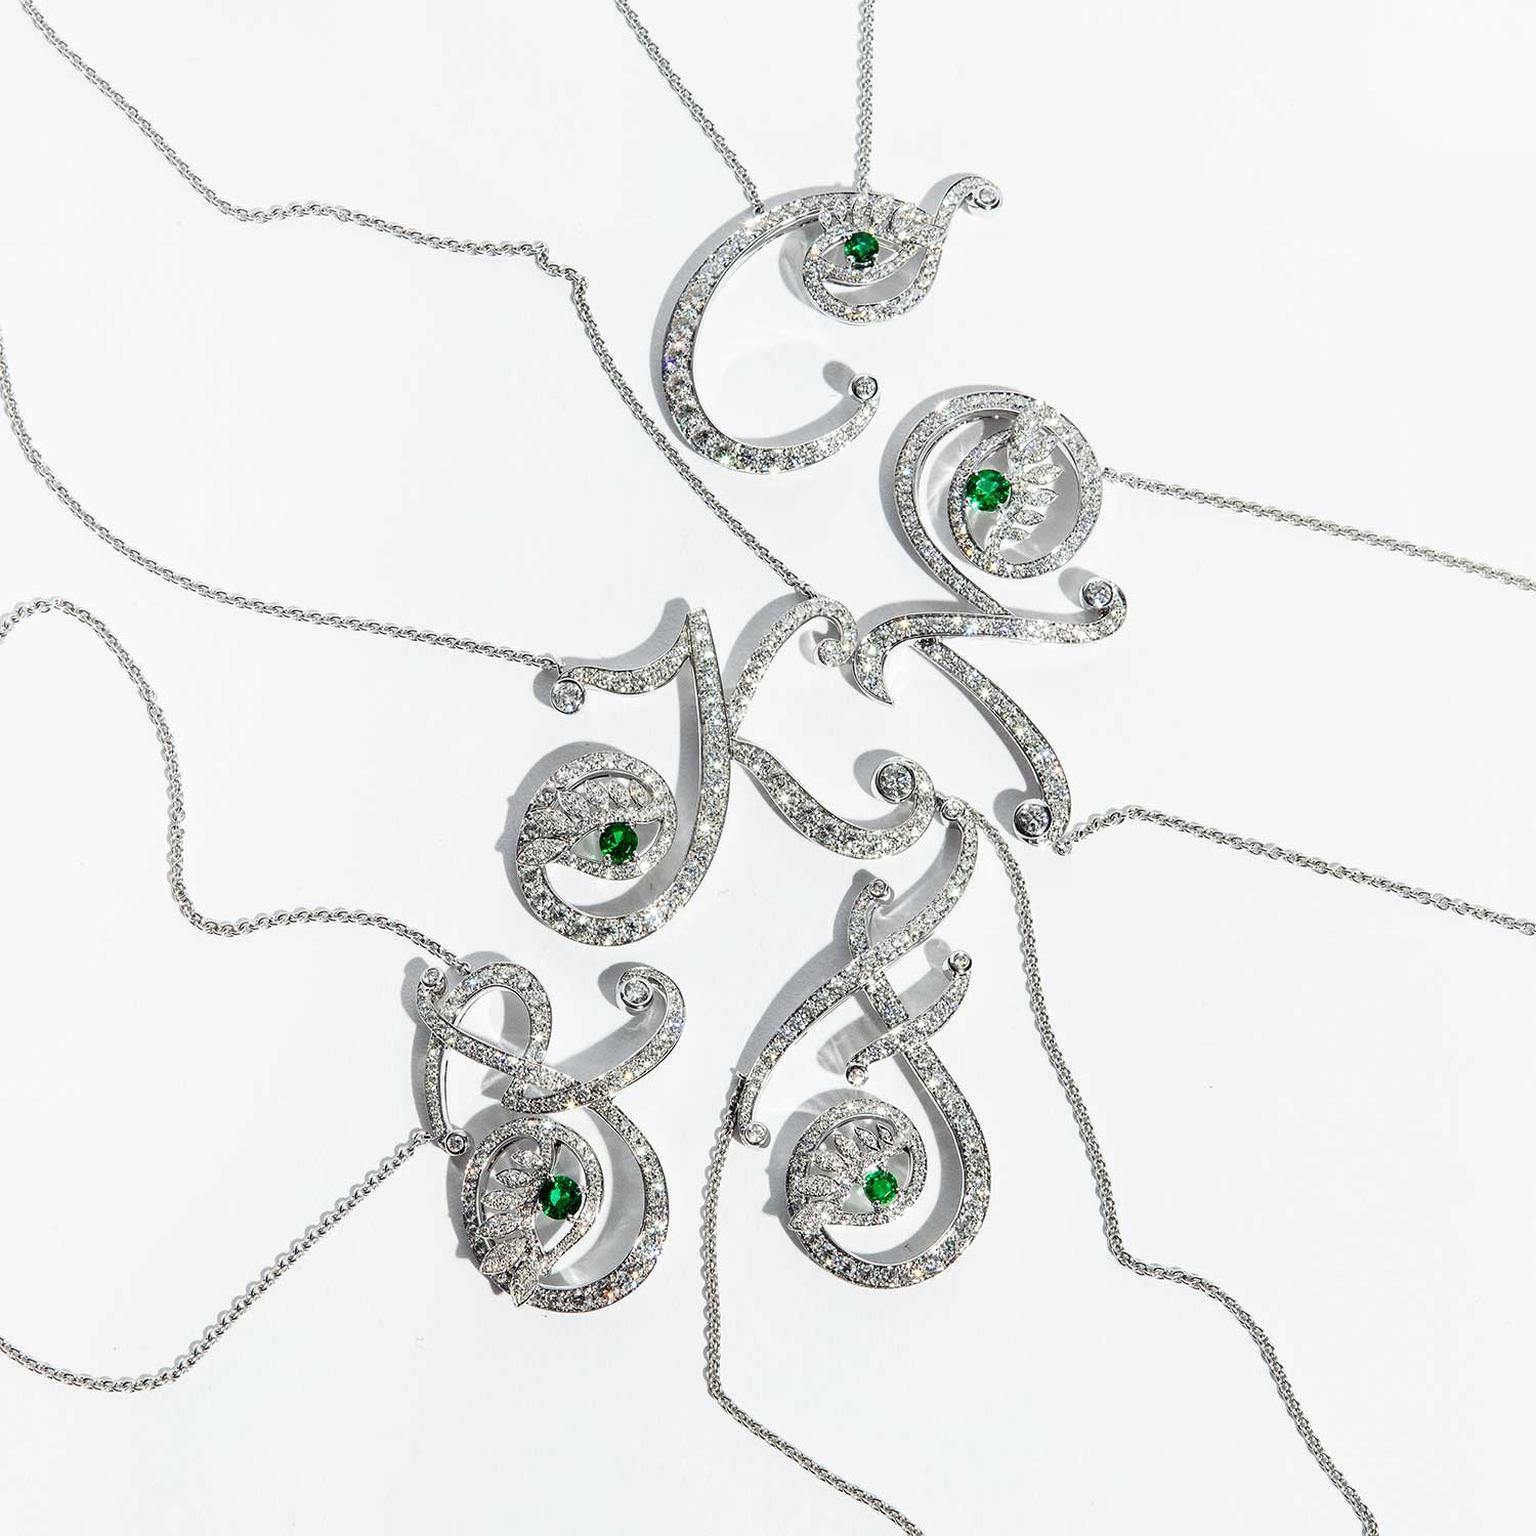 Nigora Tabayer Eye Collection necklaces